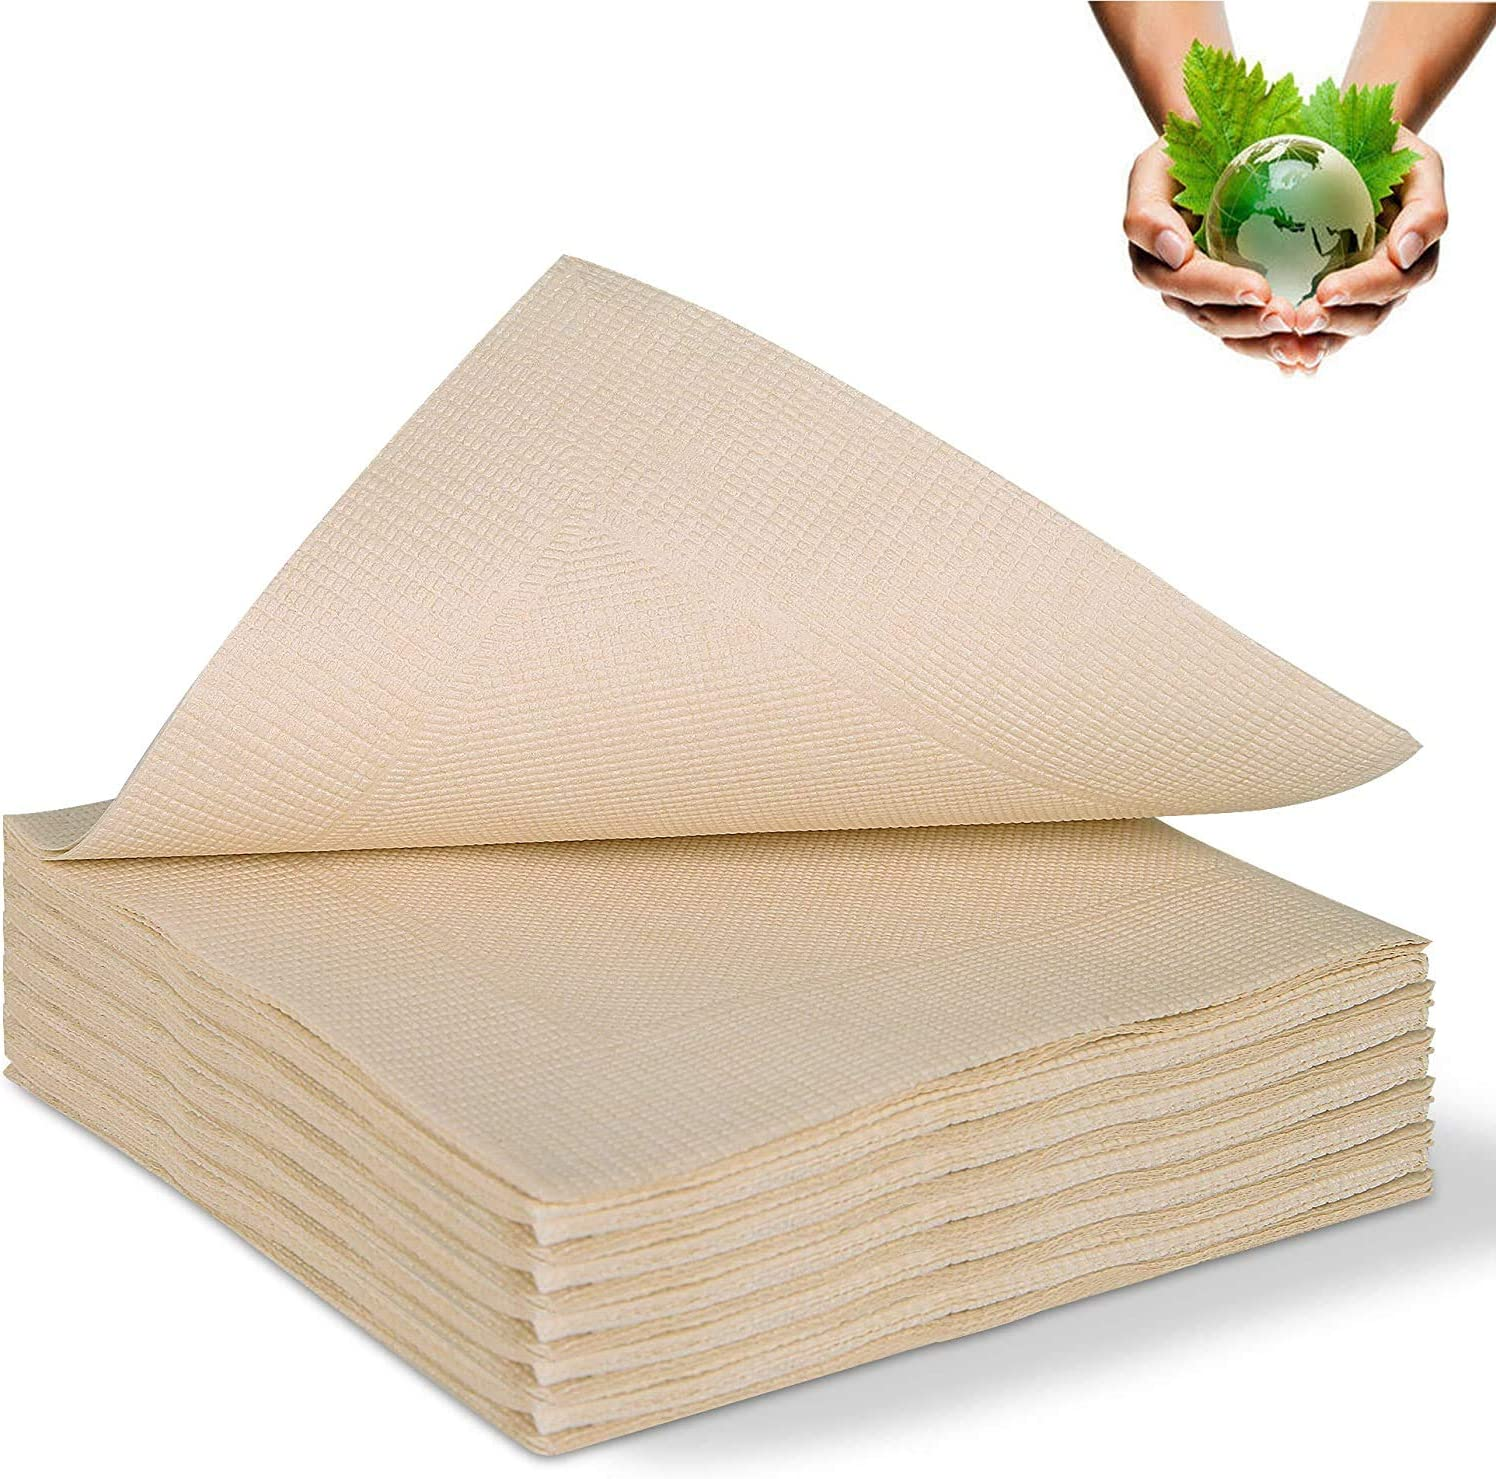 """50Pcs Recycled Post Consumer Napkins, Compostable Unbleached Eco Lunch Napkins, Disposable Dinner Napkin (13""""X 13"""")"""